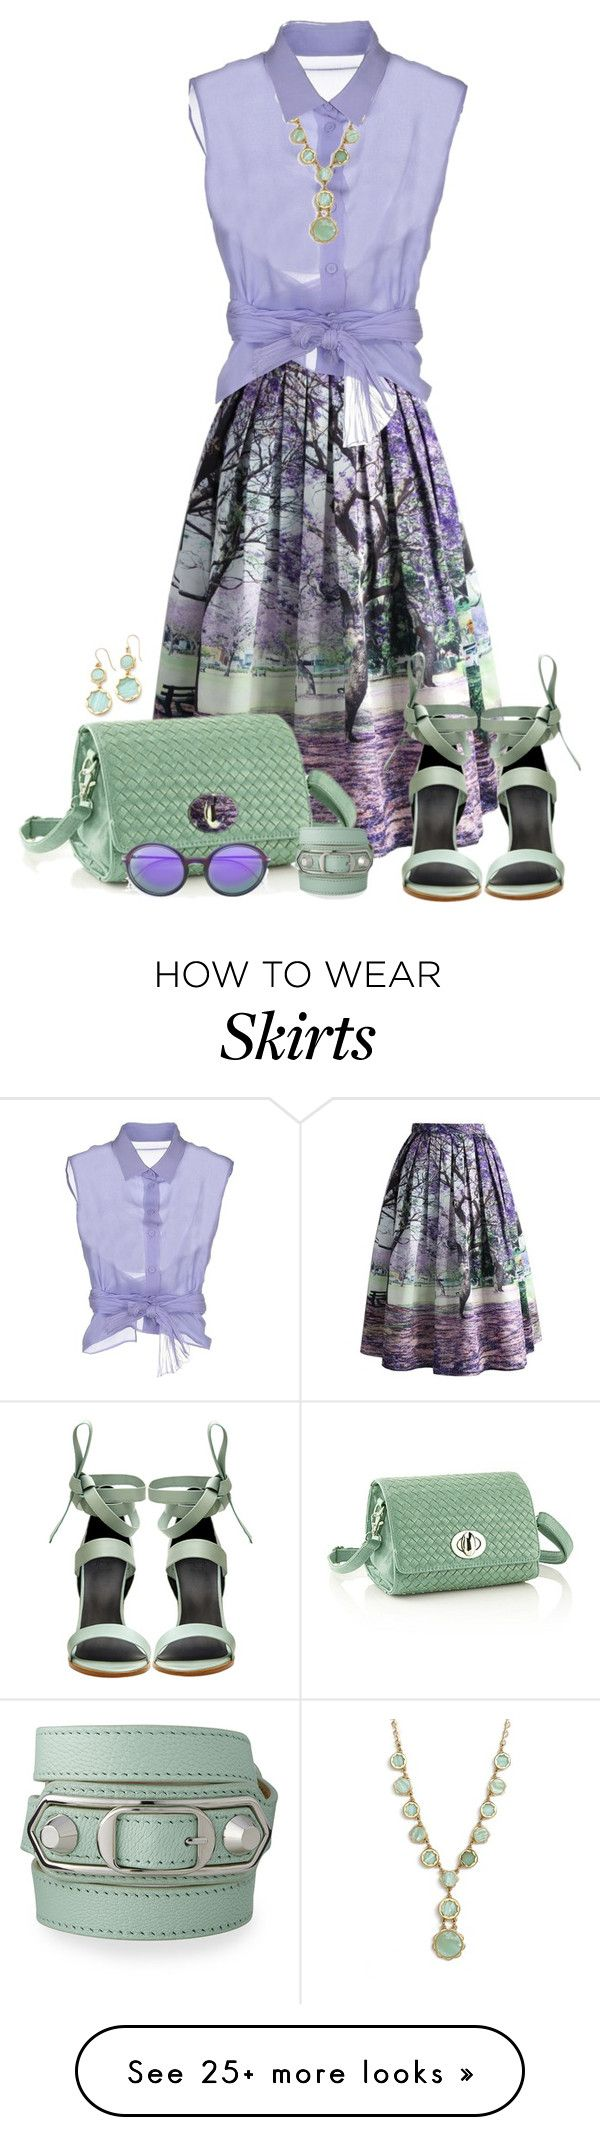 """""""Midi Skirt for Spring"""" by autumnwolf1965 on Polyvore featuring Chicwish, Alberta Ferretti, TIBI, Kate Spade, Balenciaga and Ray-Ban"""